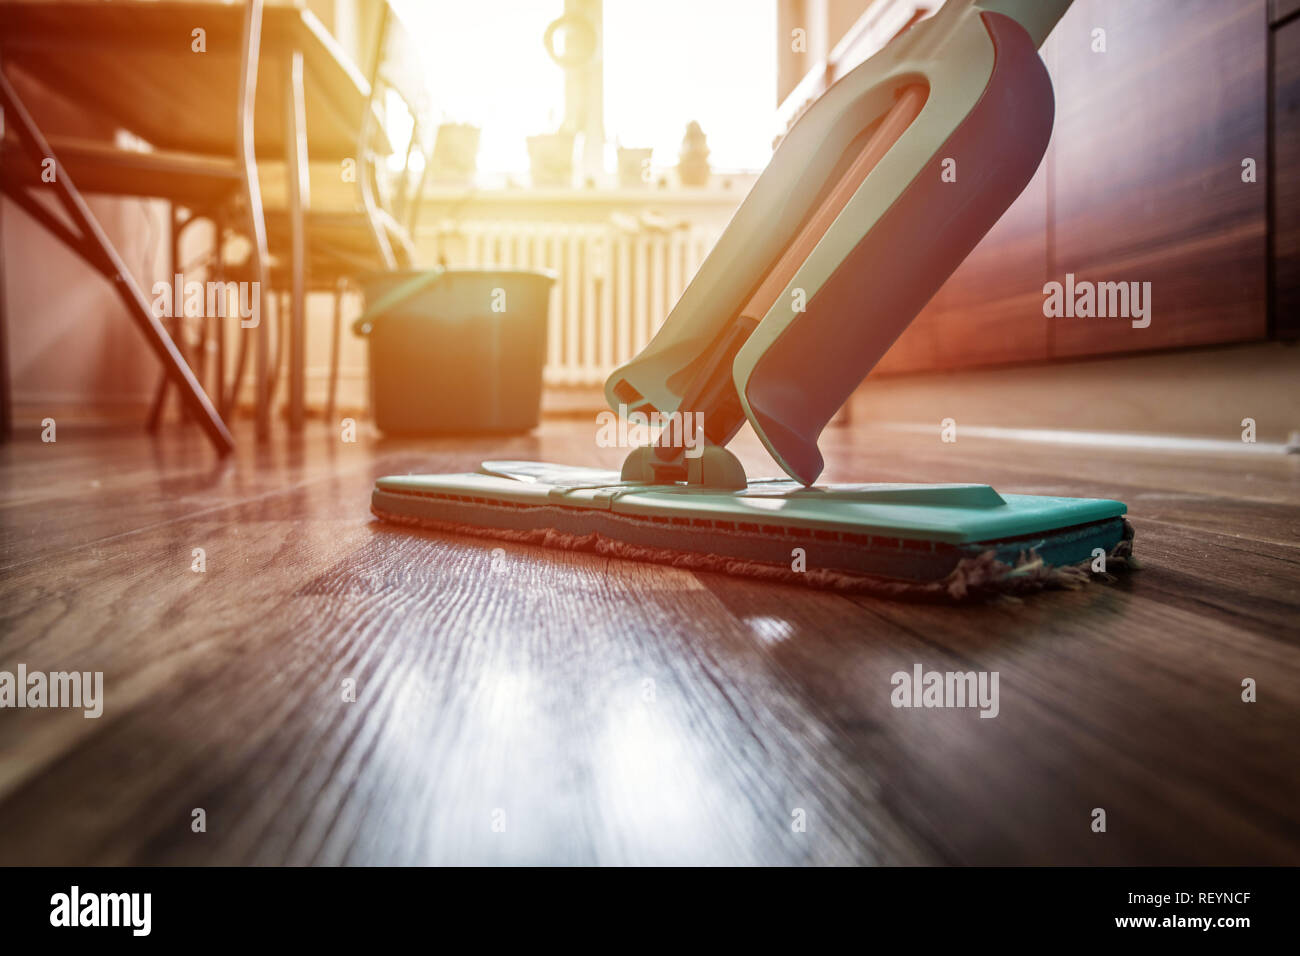 Wiping dirty wooden floor by wet wiper mop, housework - Stock Image